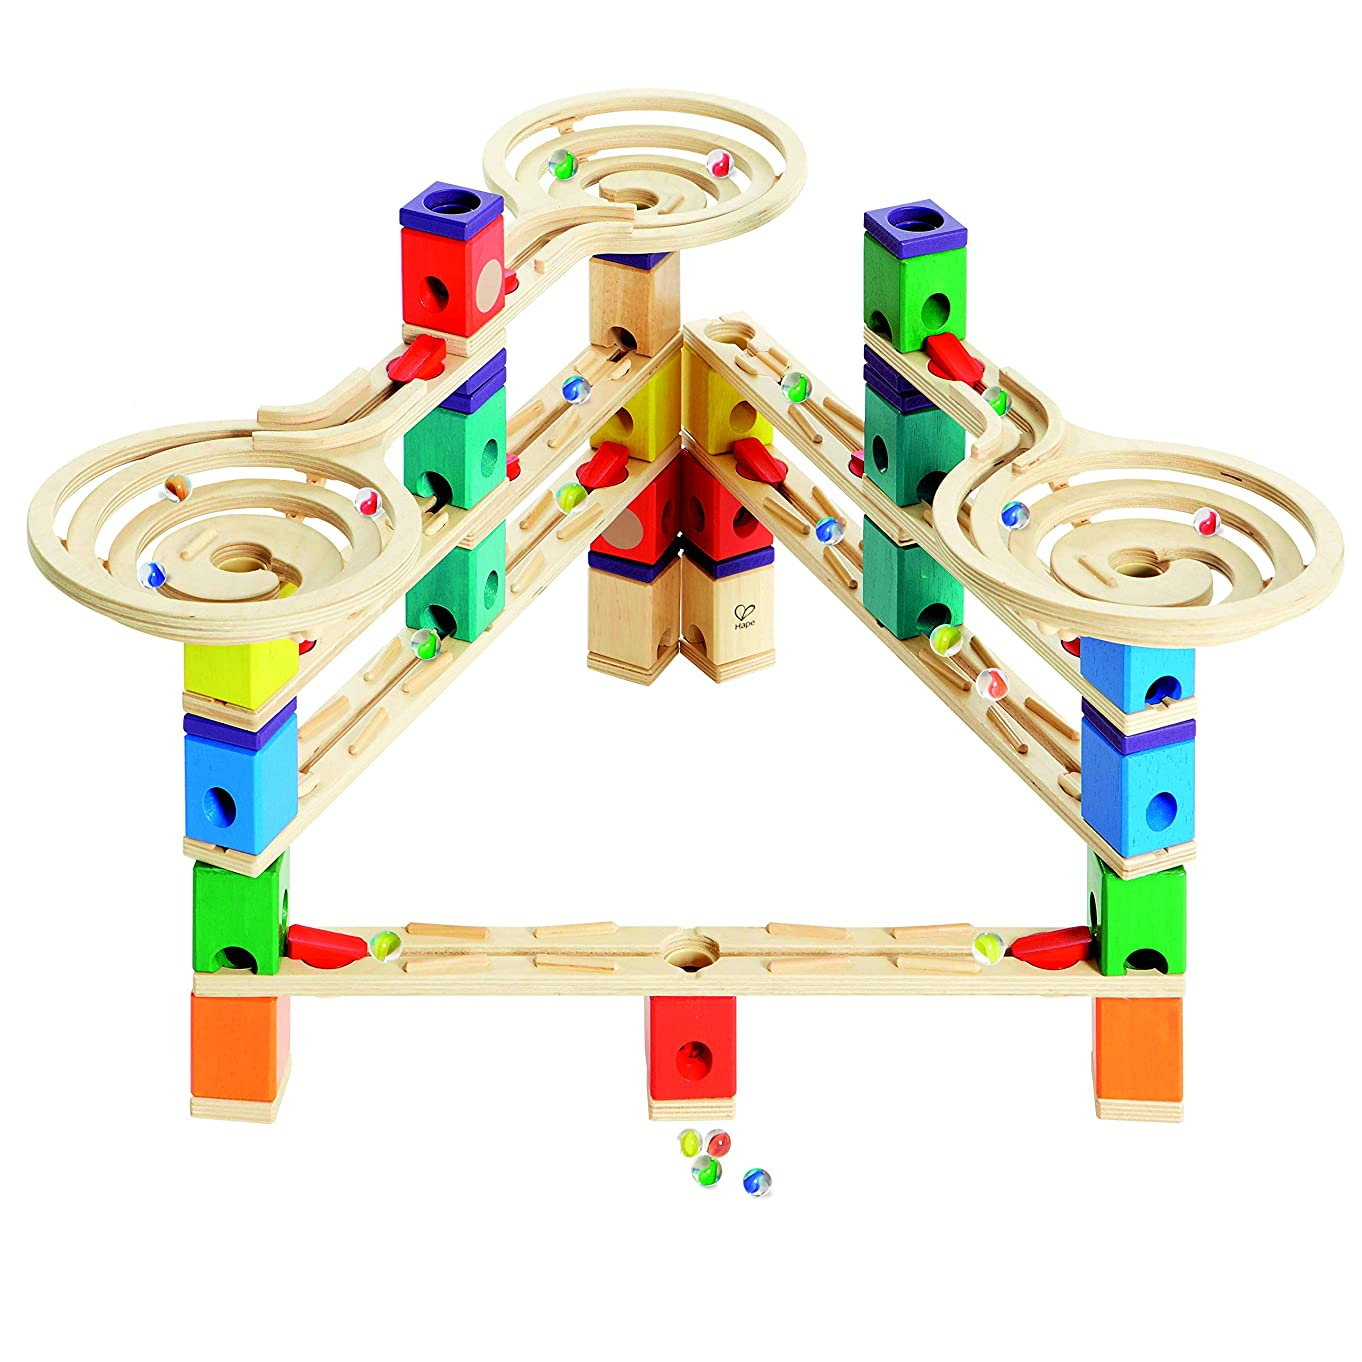 Hape E6009BK65 Quadrilla Wooden Marble Run Construction System, Vertigo, with Bonus Marble Catcher Toy, Multicolor